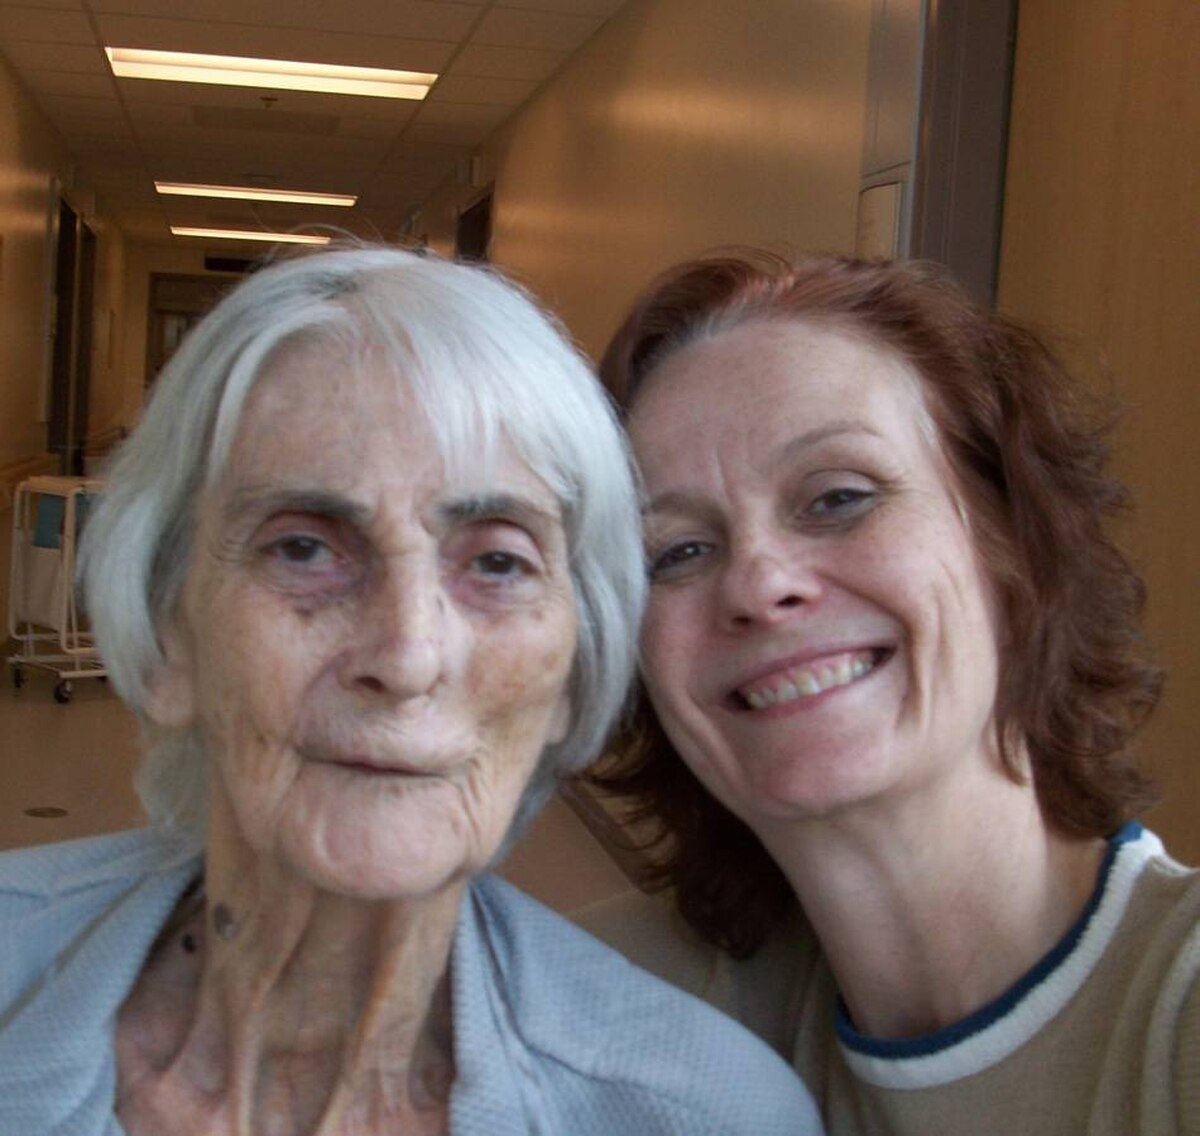 This is mom and me at the Elizabeth Bruyere Long Term Care Centre. She took care of me, now I do what I can to take care of her. Love you Mom. - Charlene